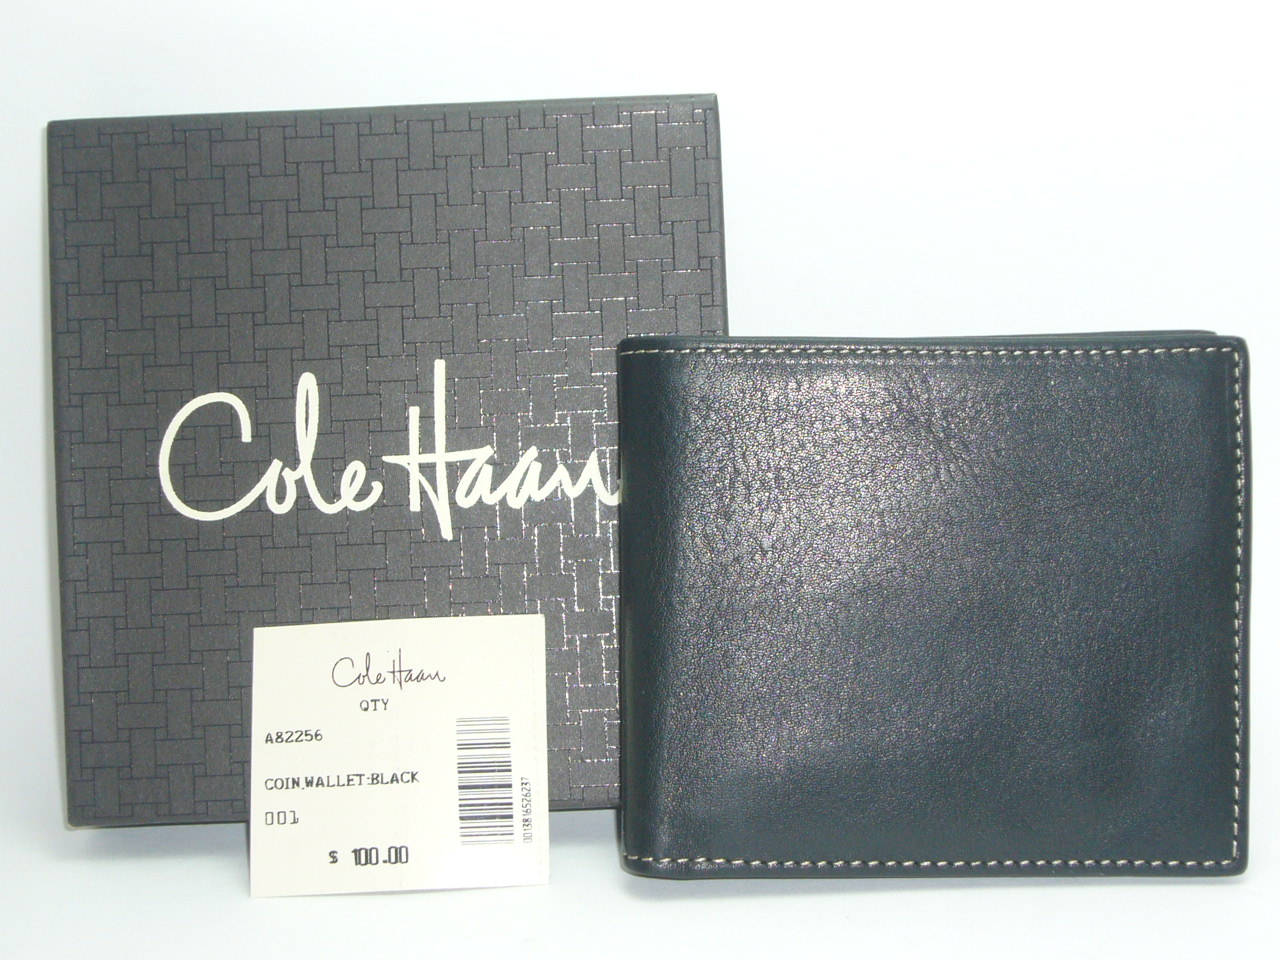 a642a9cb965 Cole Haan Leather Coin Wallet Black - Pinedale Collect - Old World ...